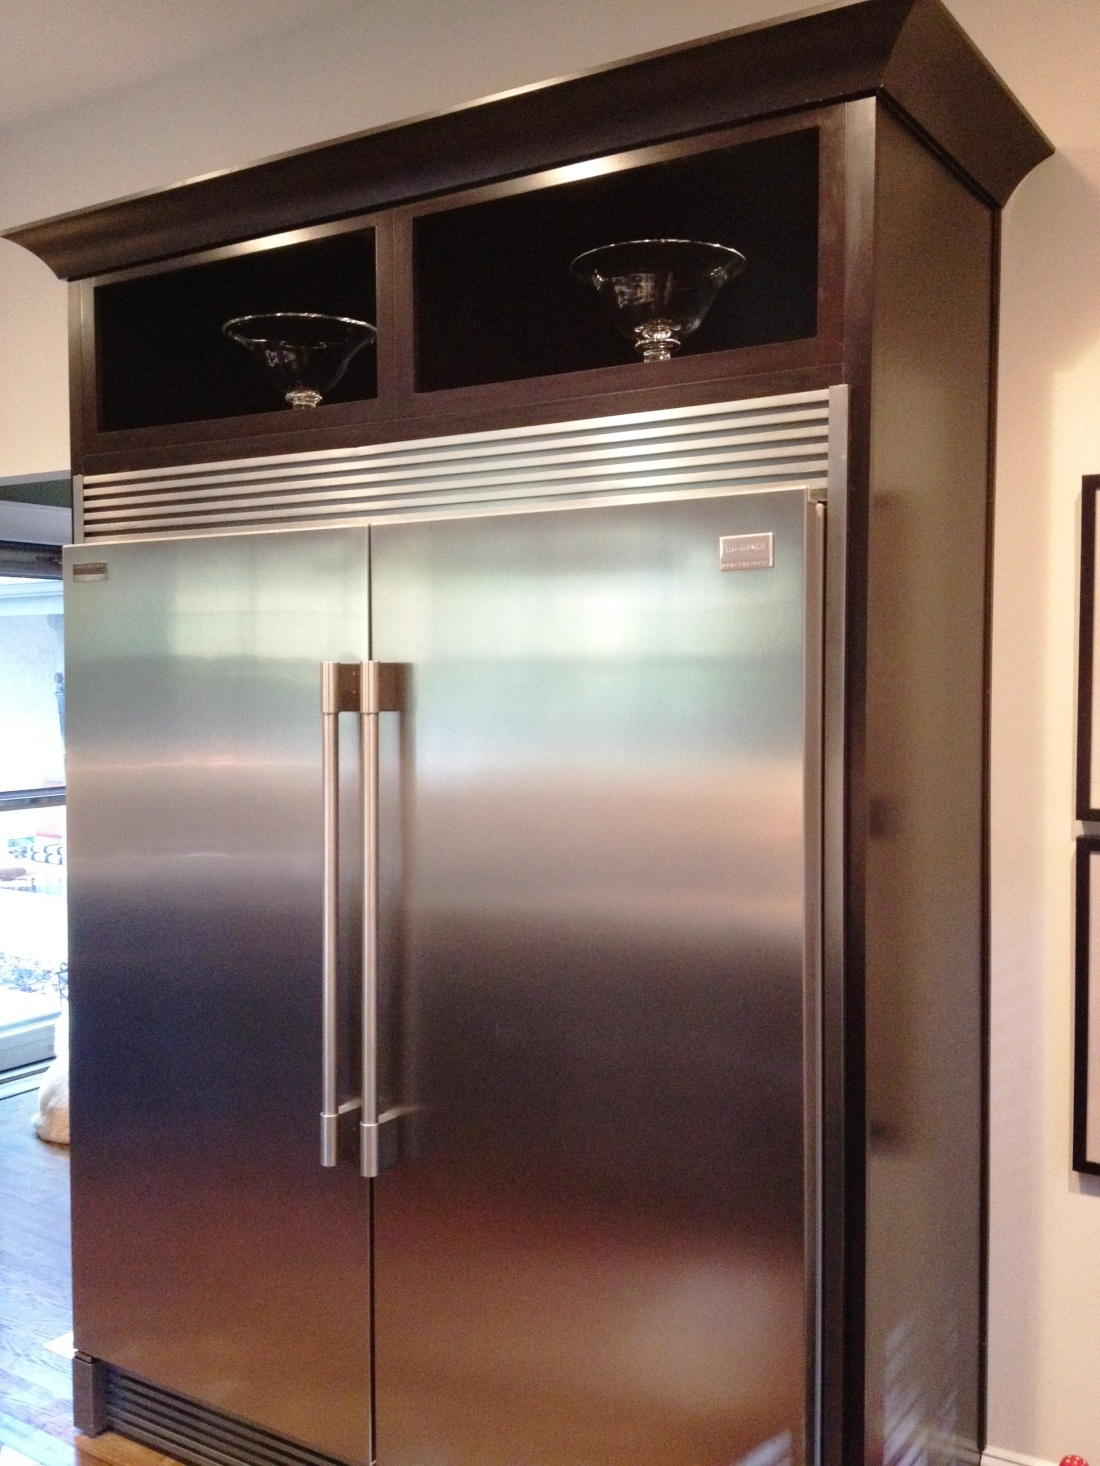 The refrigerator and freezer door handles finally match.